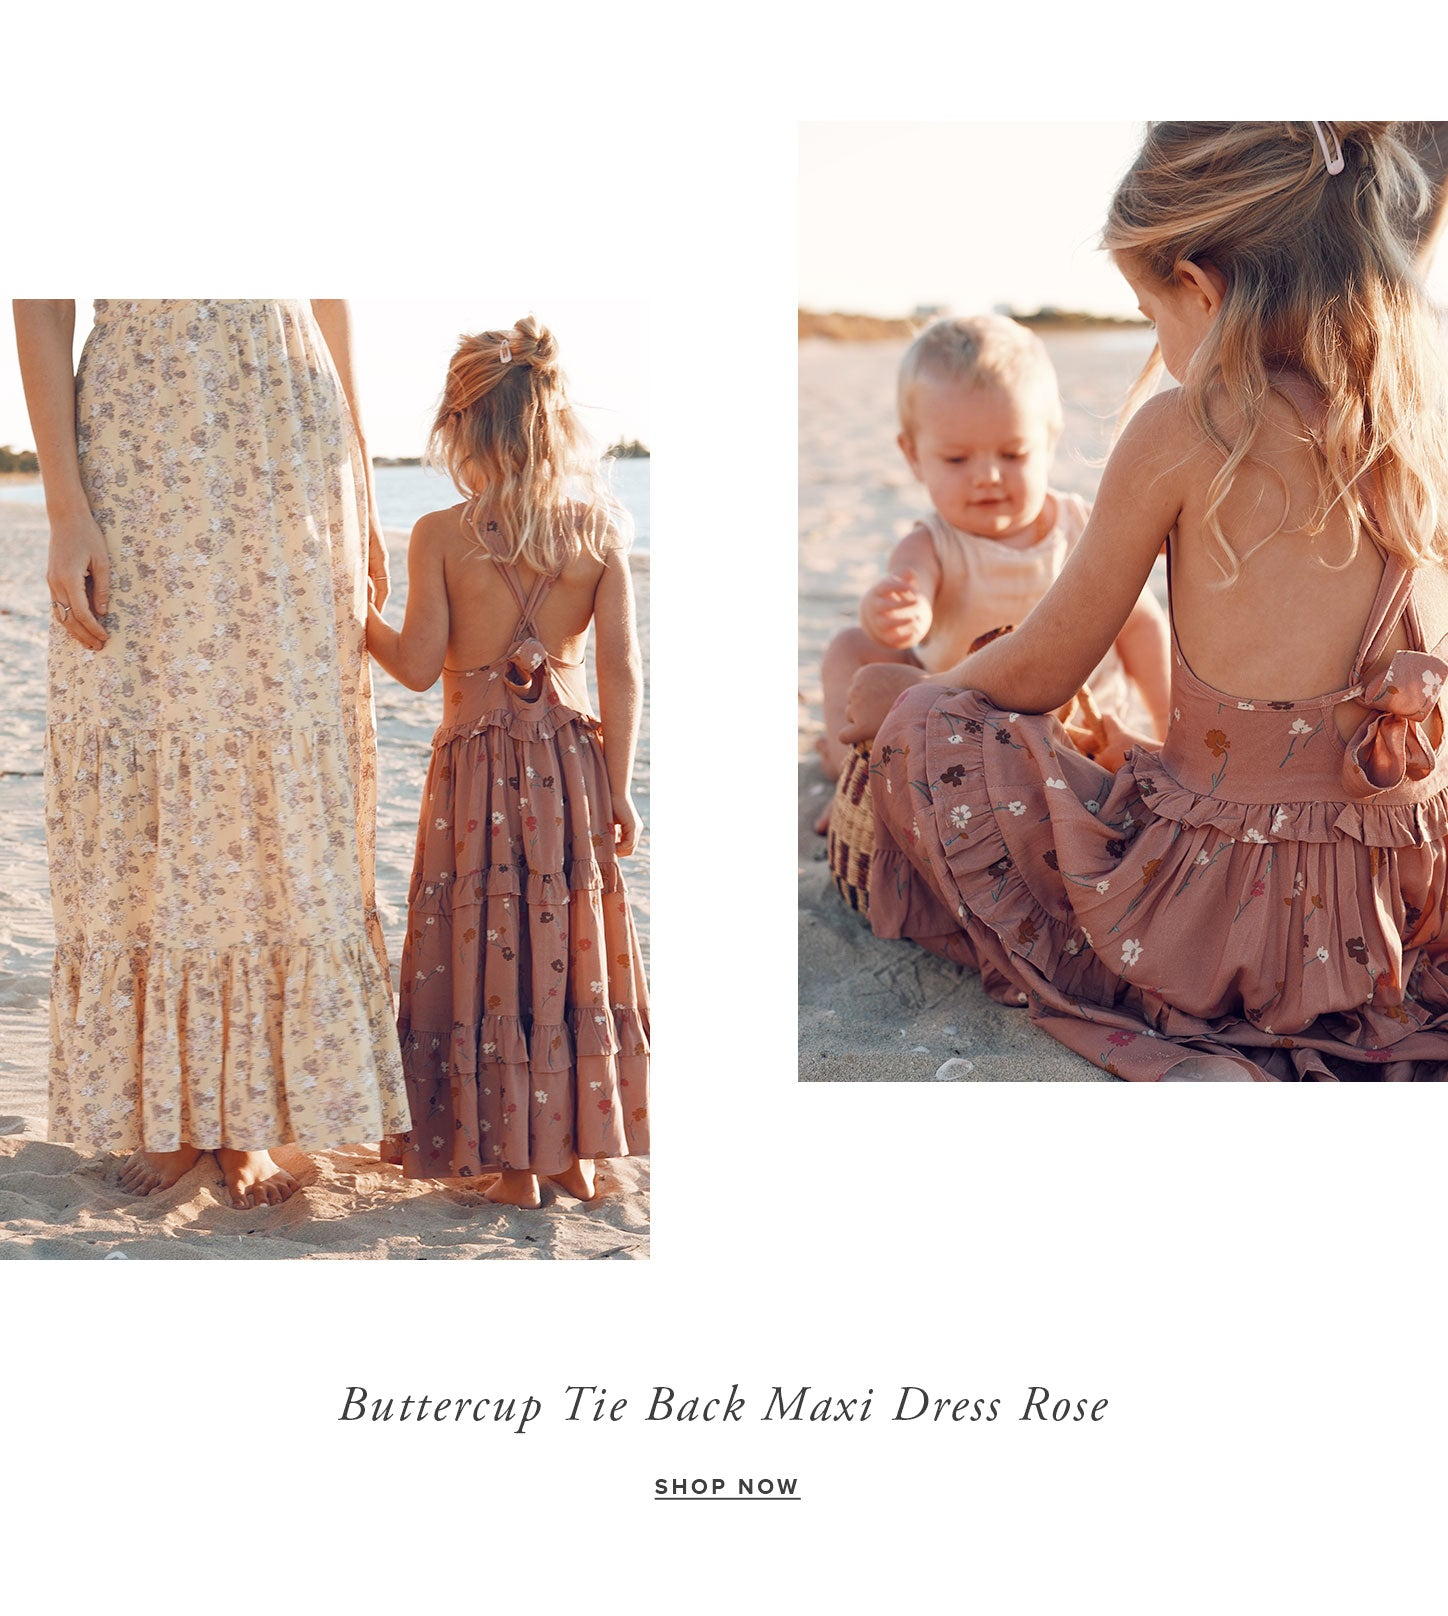 Buttercup Tie Back Maxi Dress Rose